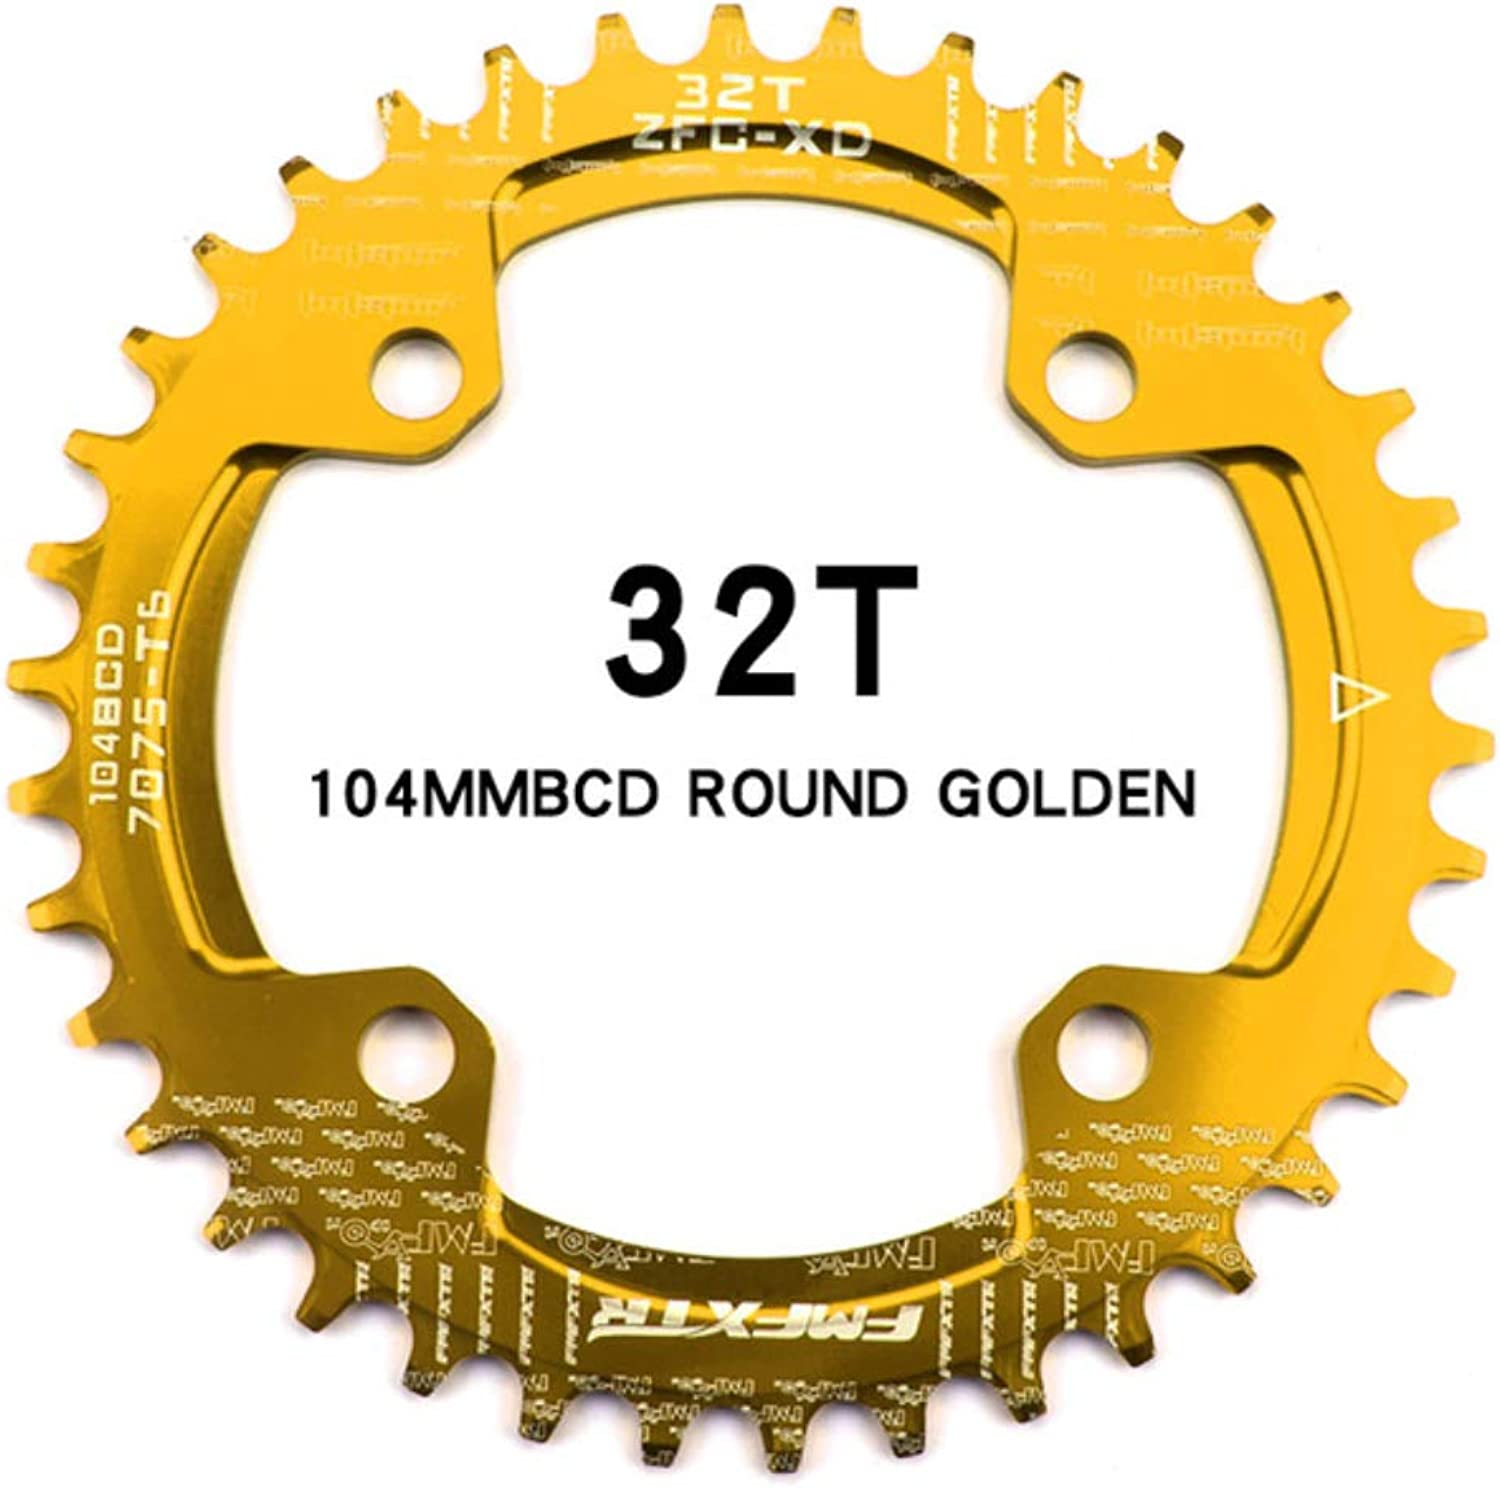 AM XC Bicycle 104BCD Round Single disc, 32T   34T   36T   38T Mountain Bike Bicycle Plate disc and Crank Veneer, Purple